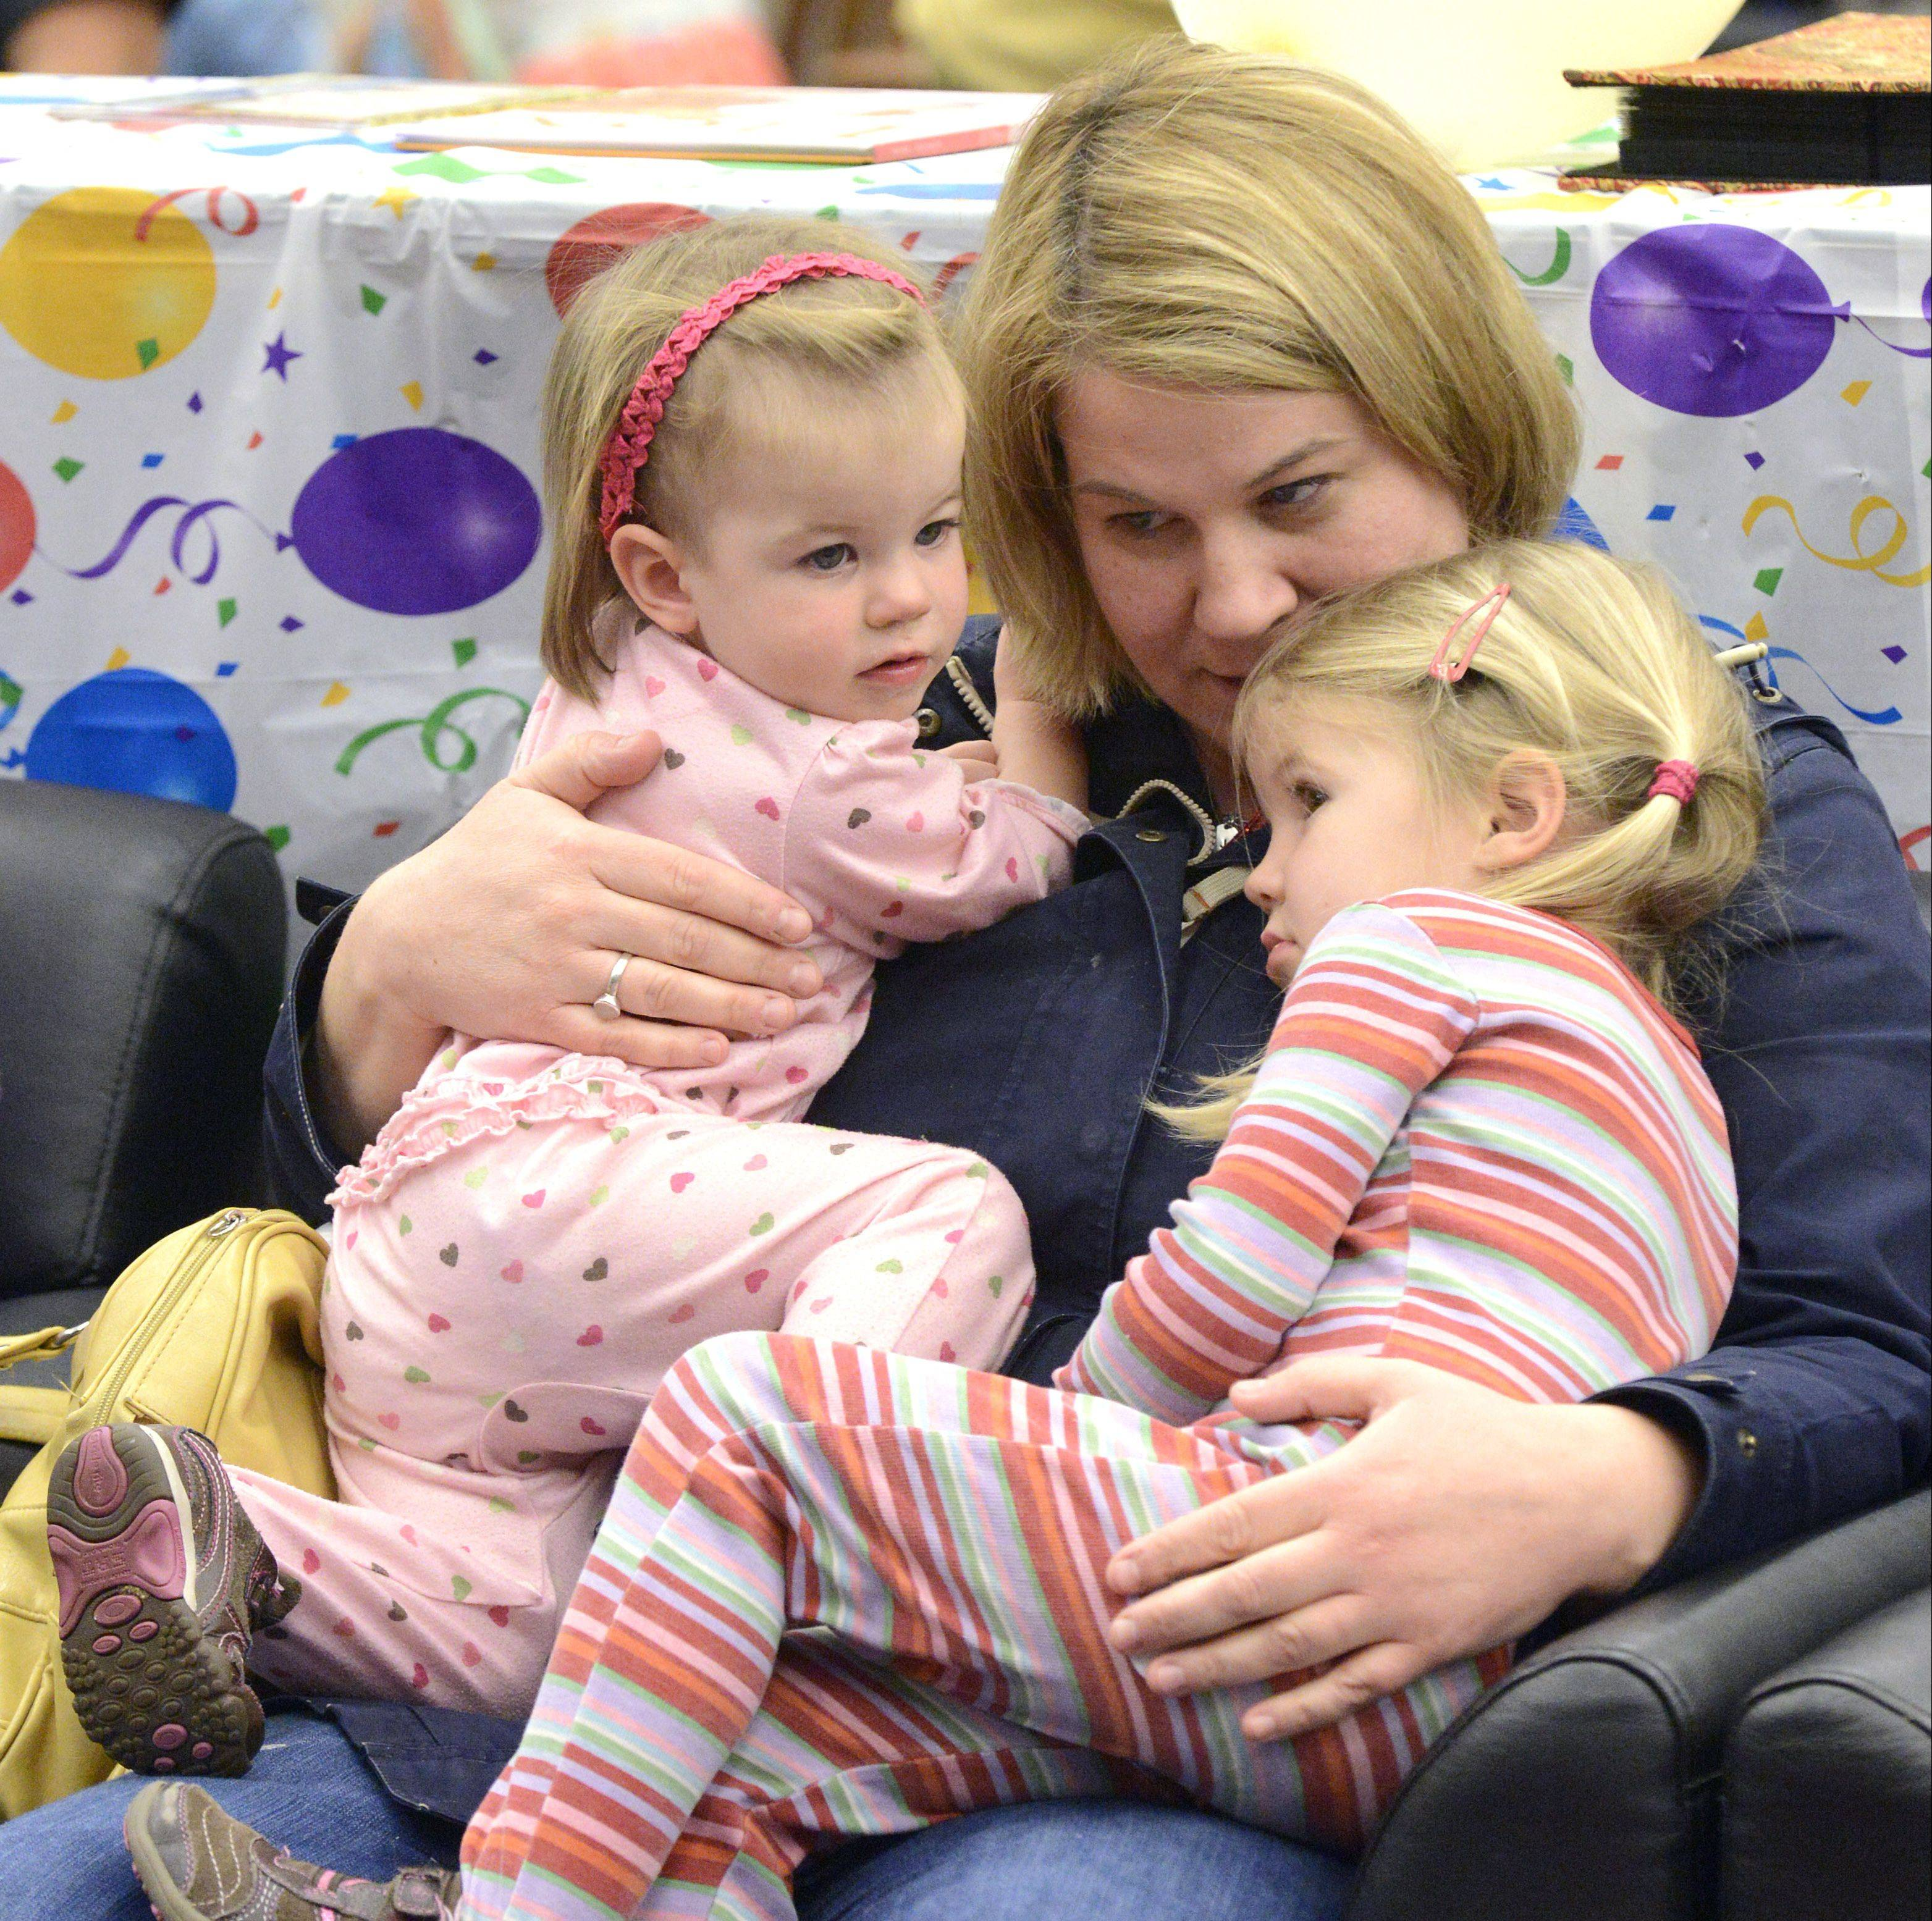 Ann Kennedy of St. Charles cuddles with her children Rose, 15 months, and Grace, 3, while they listen to stories at Family Reading Night. Her other children, James, 7, and Nora, 5, also attended. This is their first time at the event.